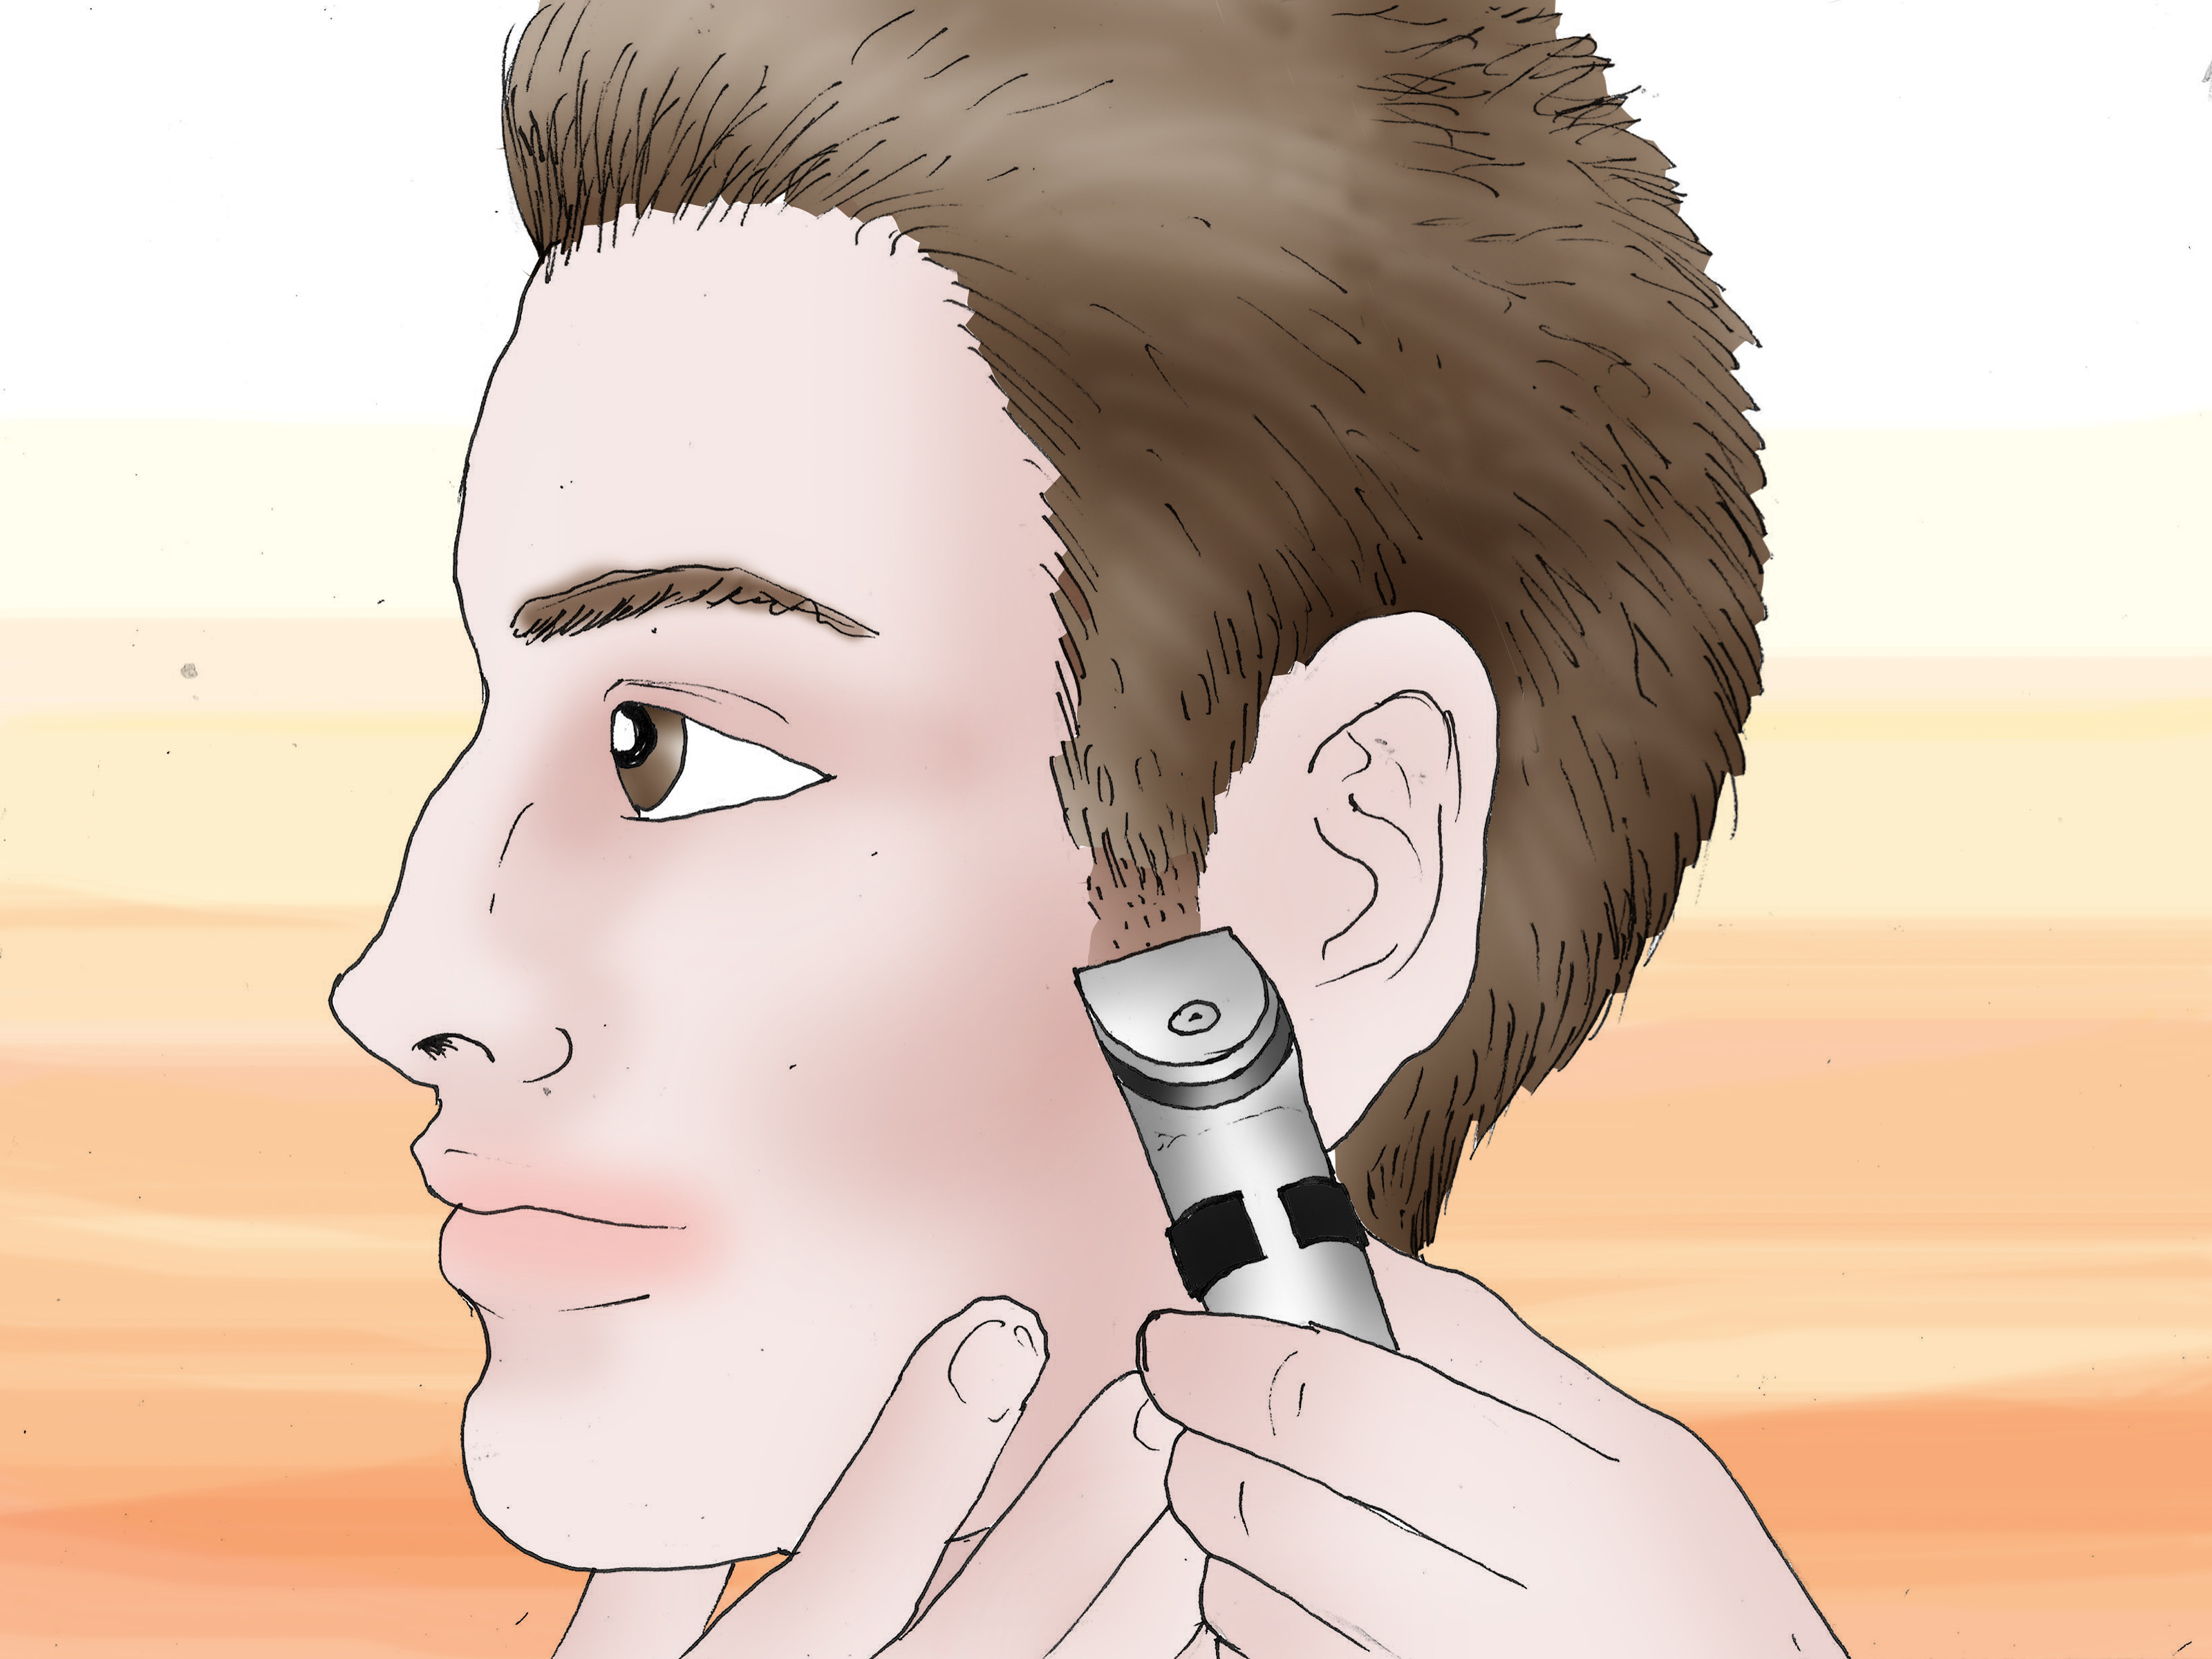 Best ideas about Cut Own Hair Male . Save or Pin How to Cut Your Own Hair Men 13 Steps with Now.